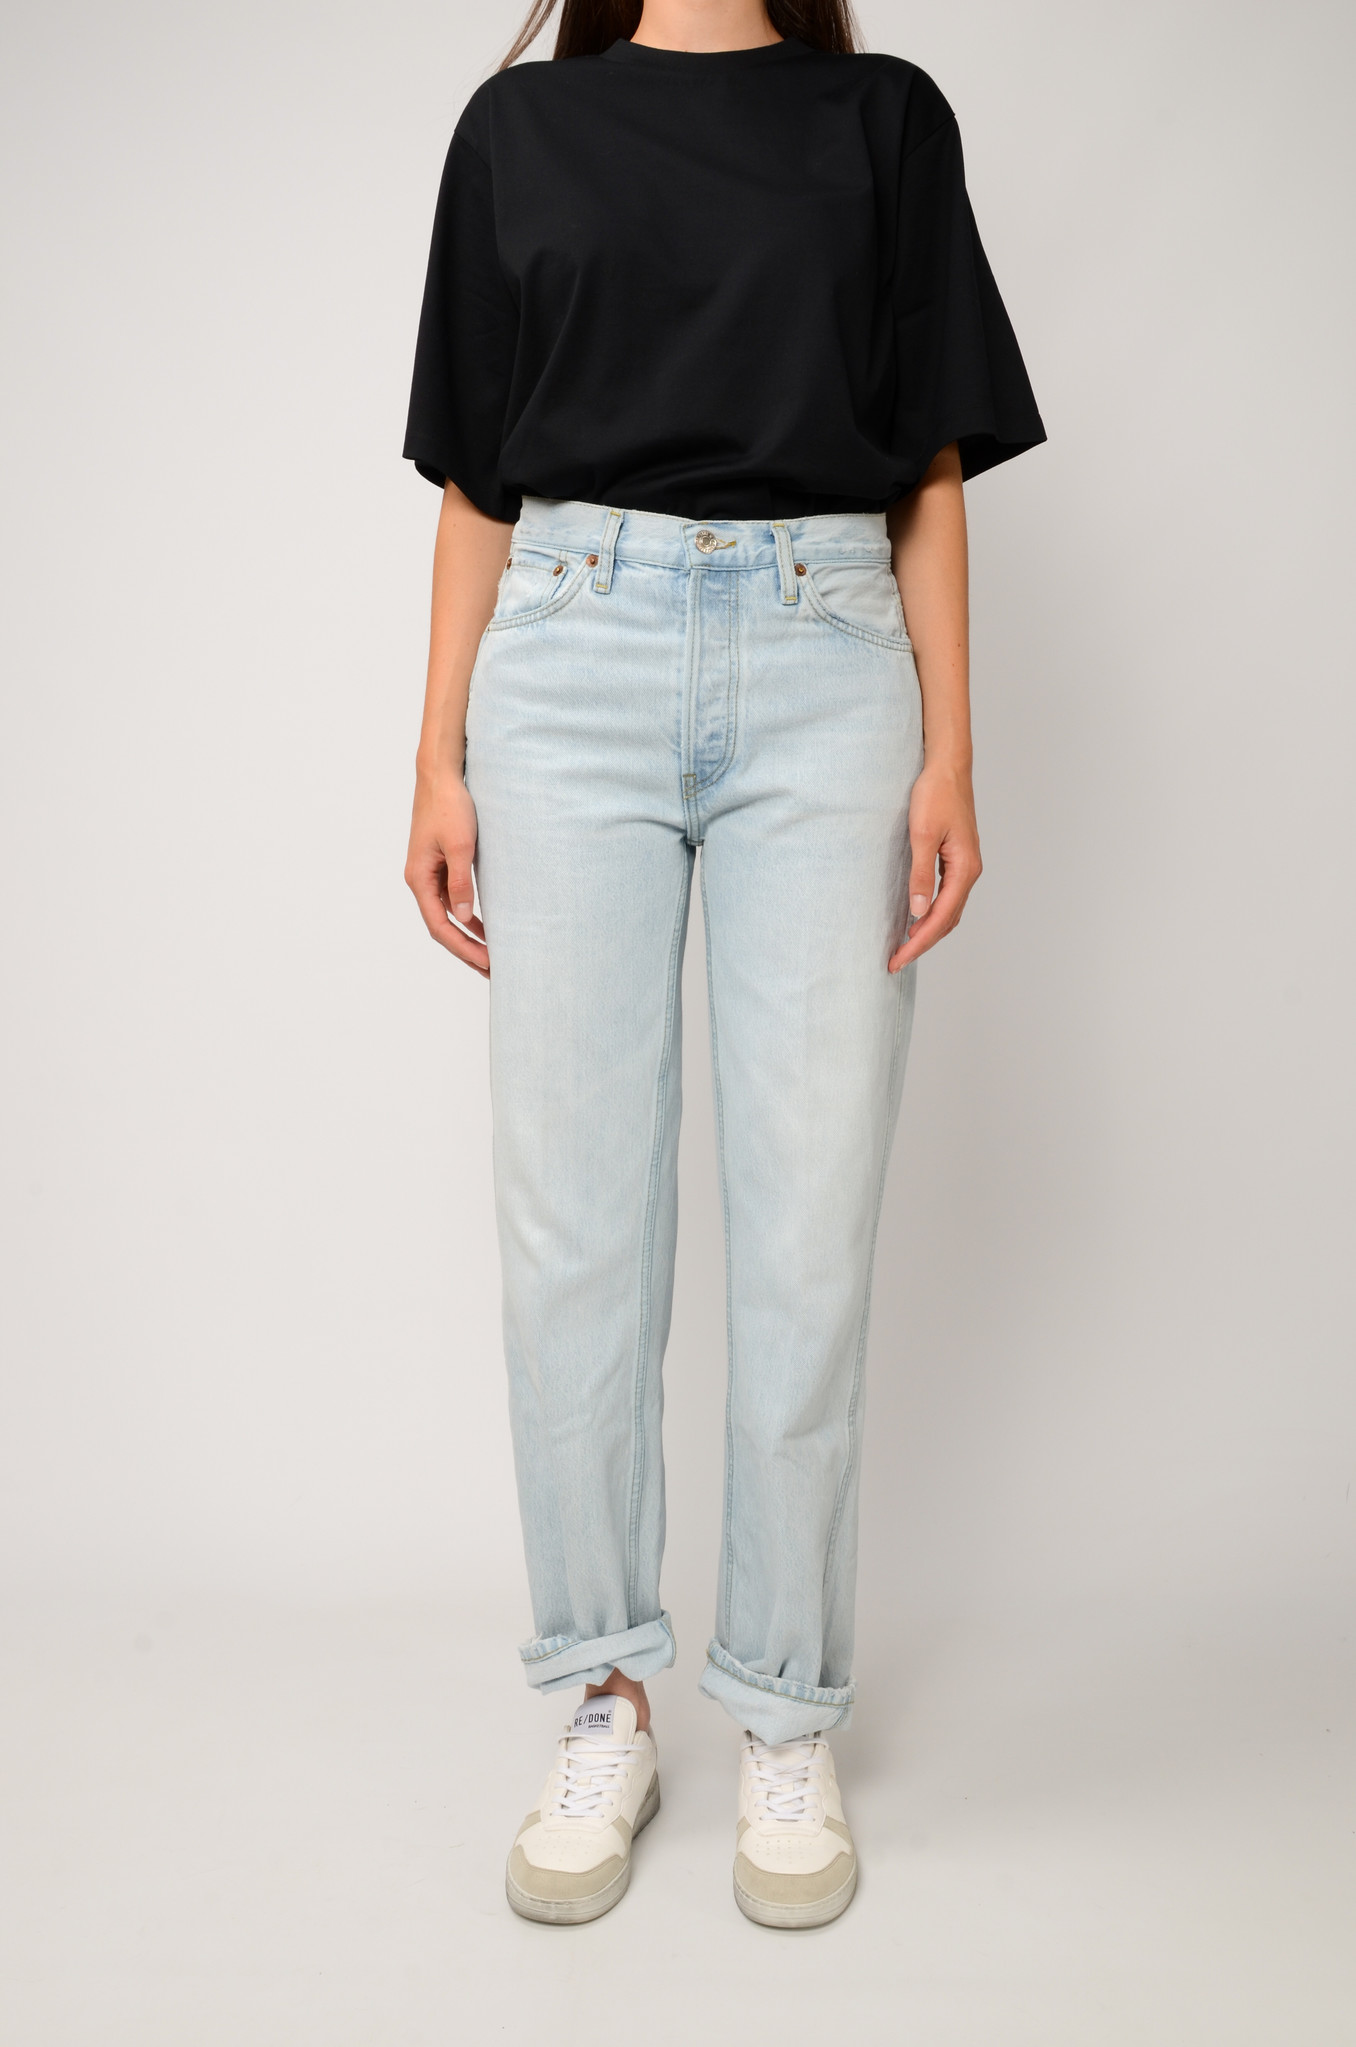 90S HIGH RISE JEANS-1